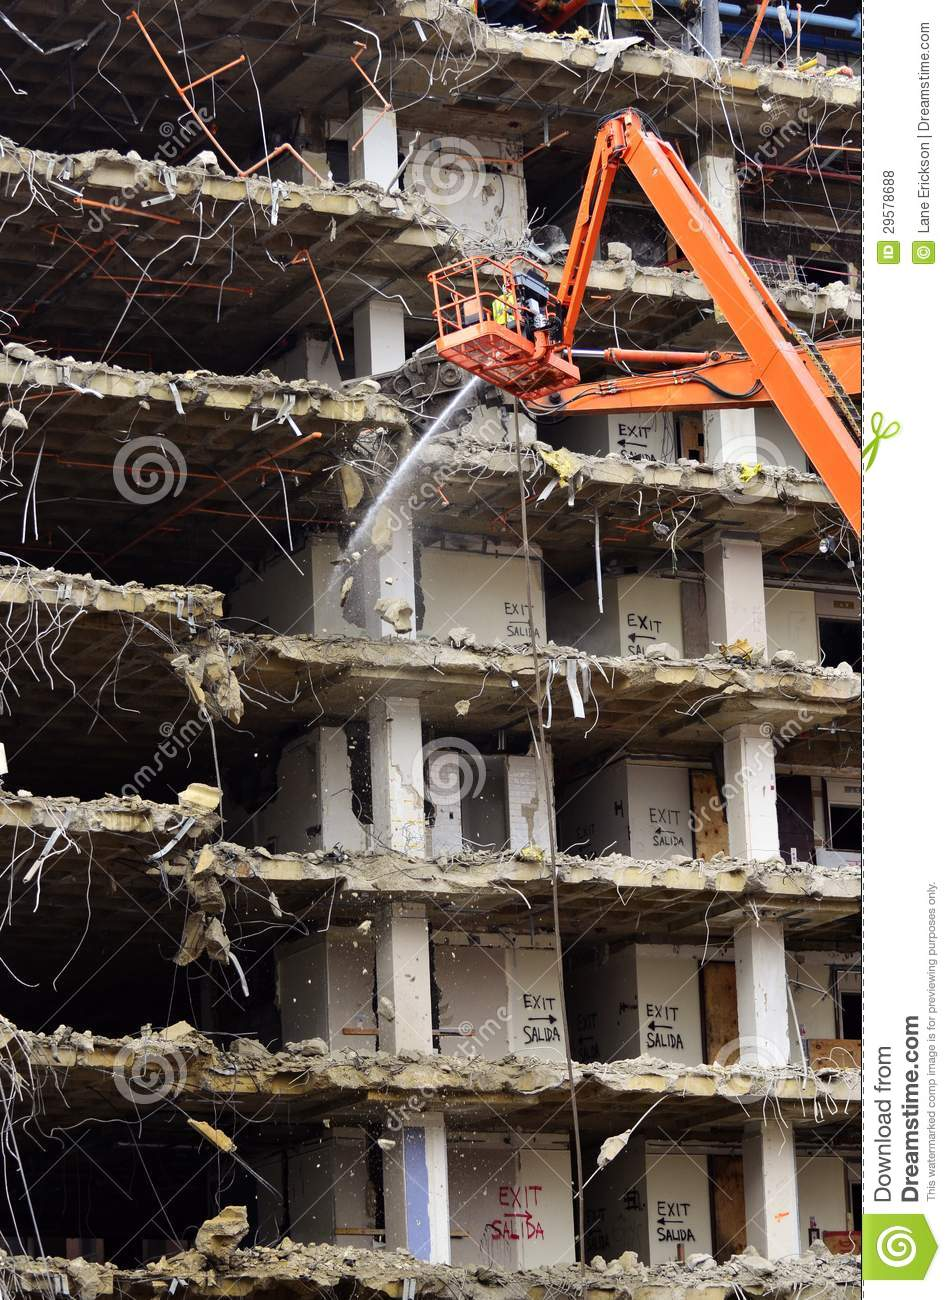 Building Falling Down : Building collapsing or falling down royalty free stock